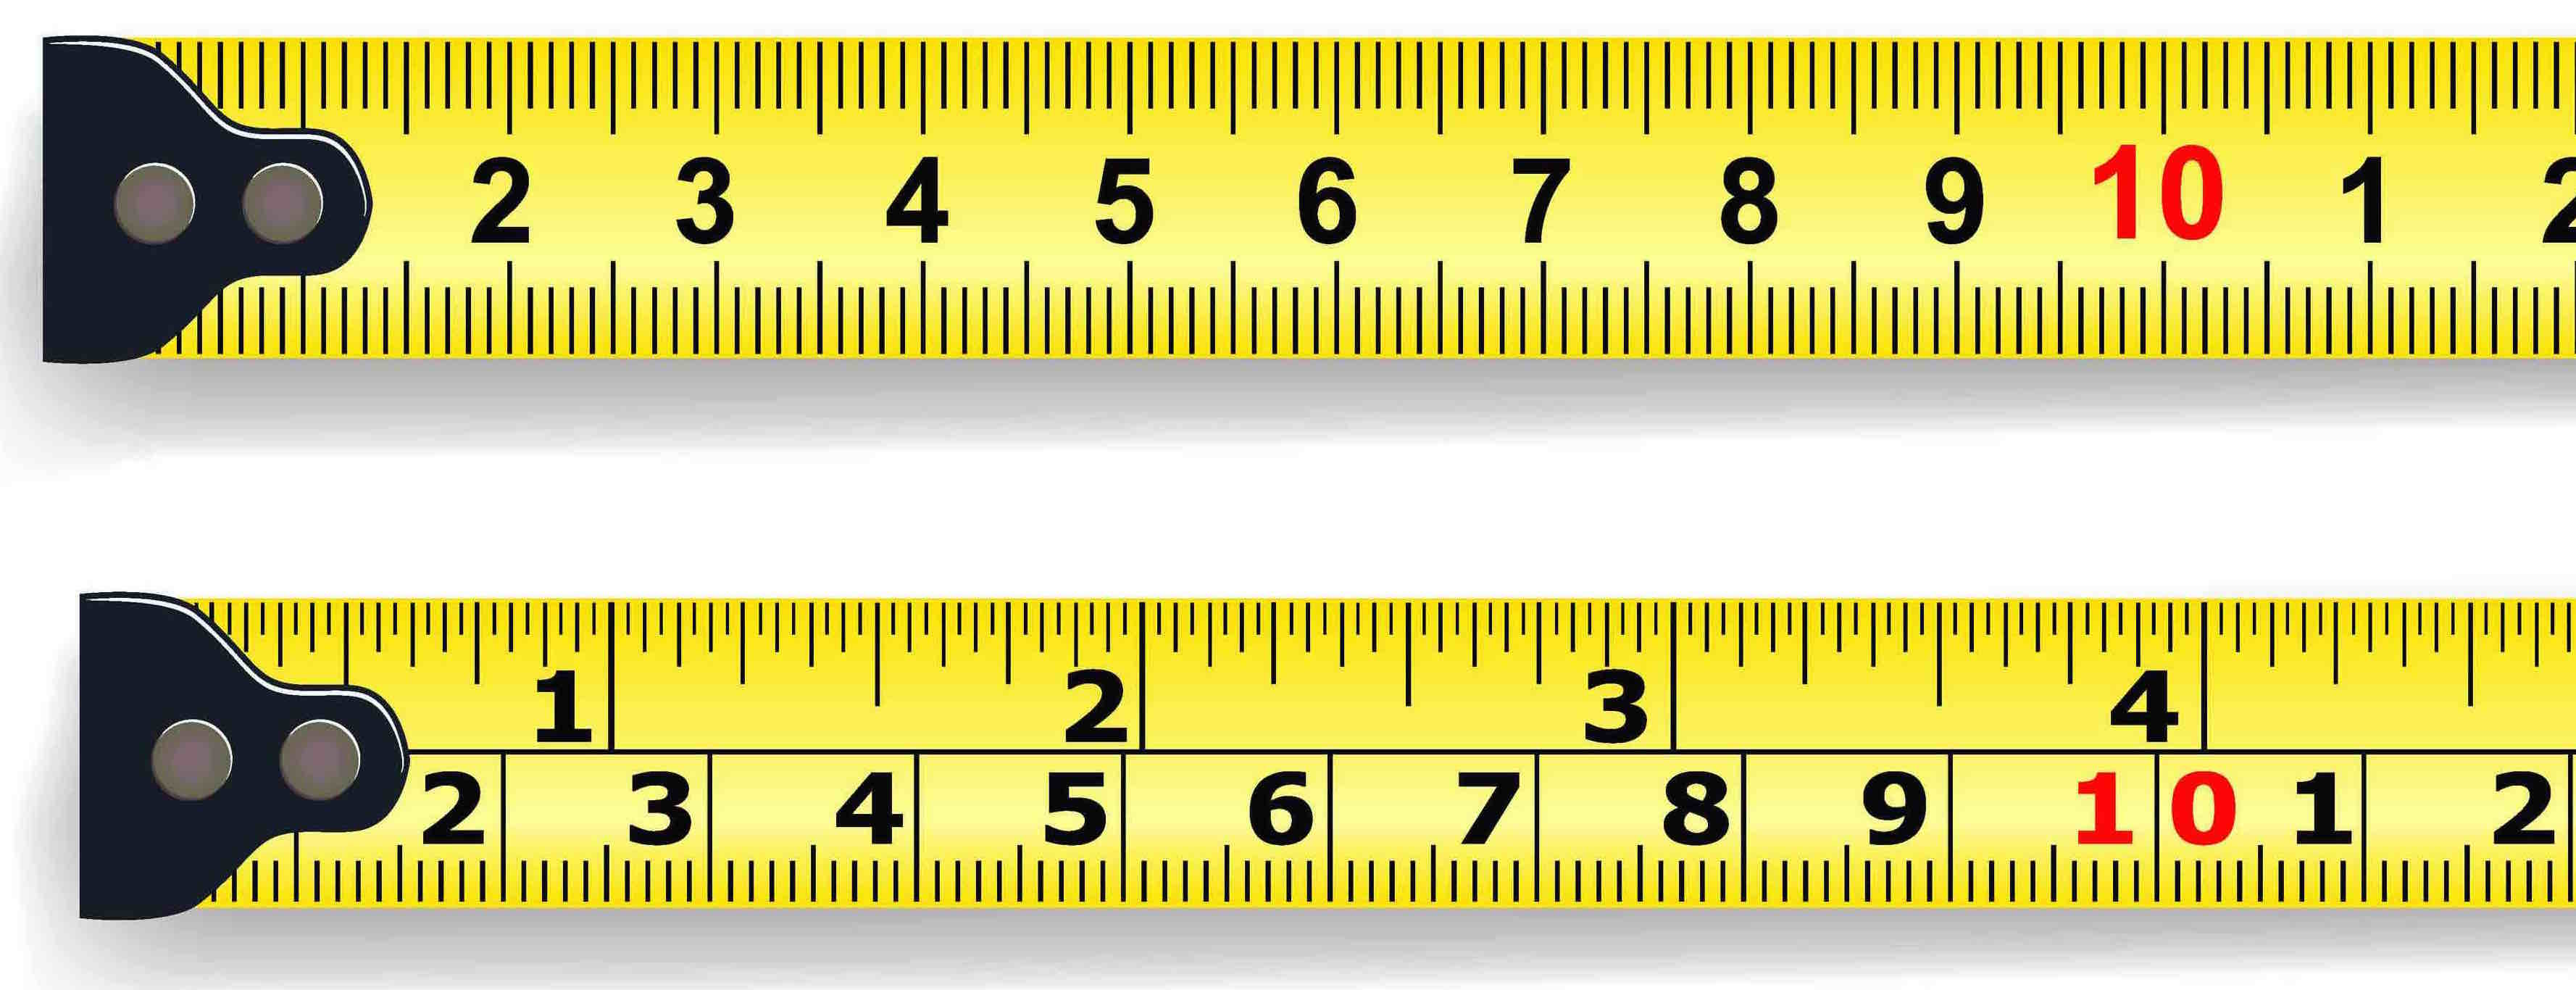 Tips & Tricks: Selecting a Measurement System